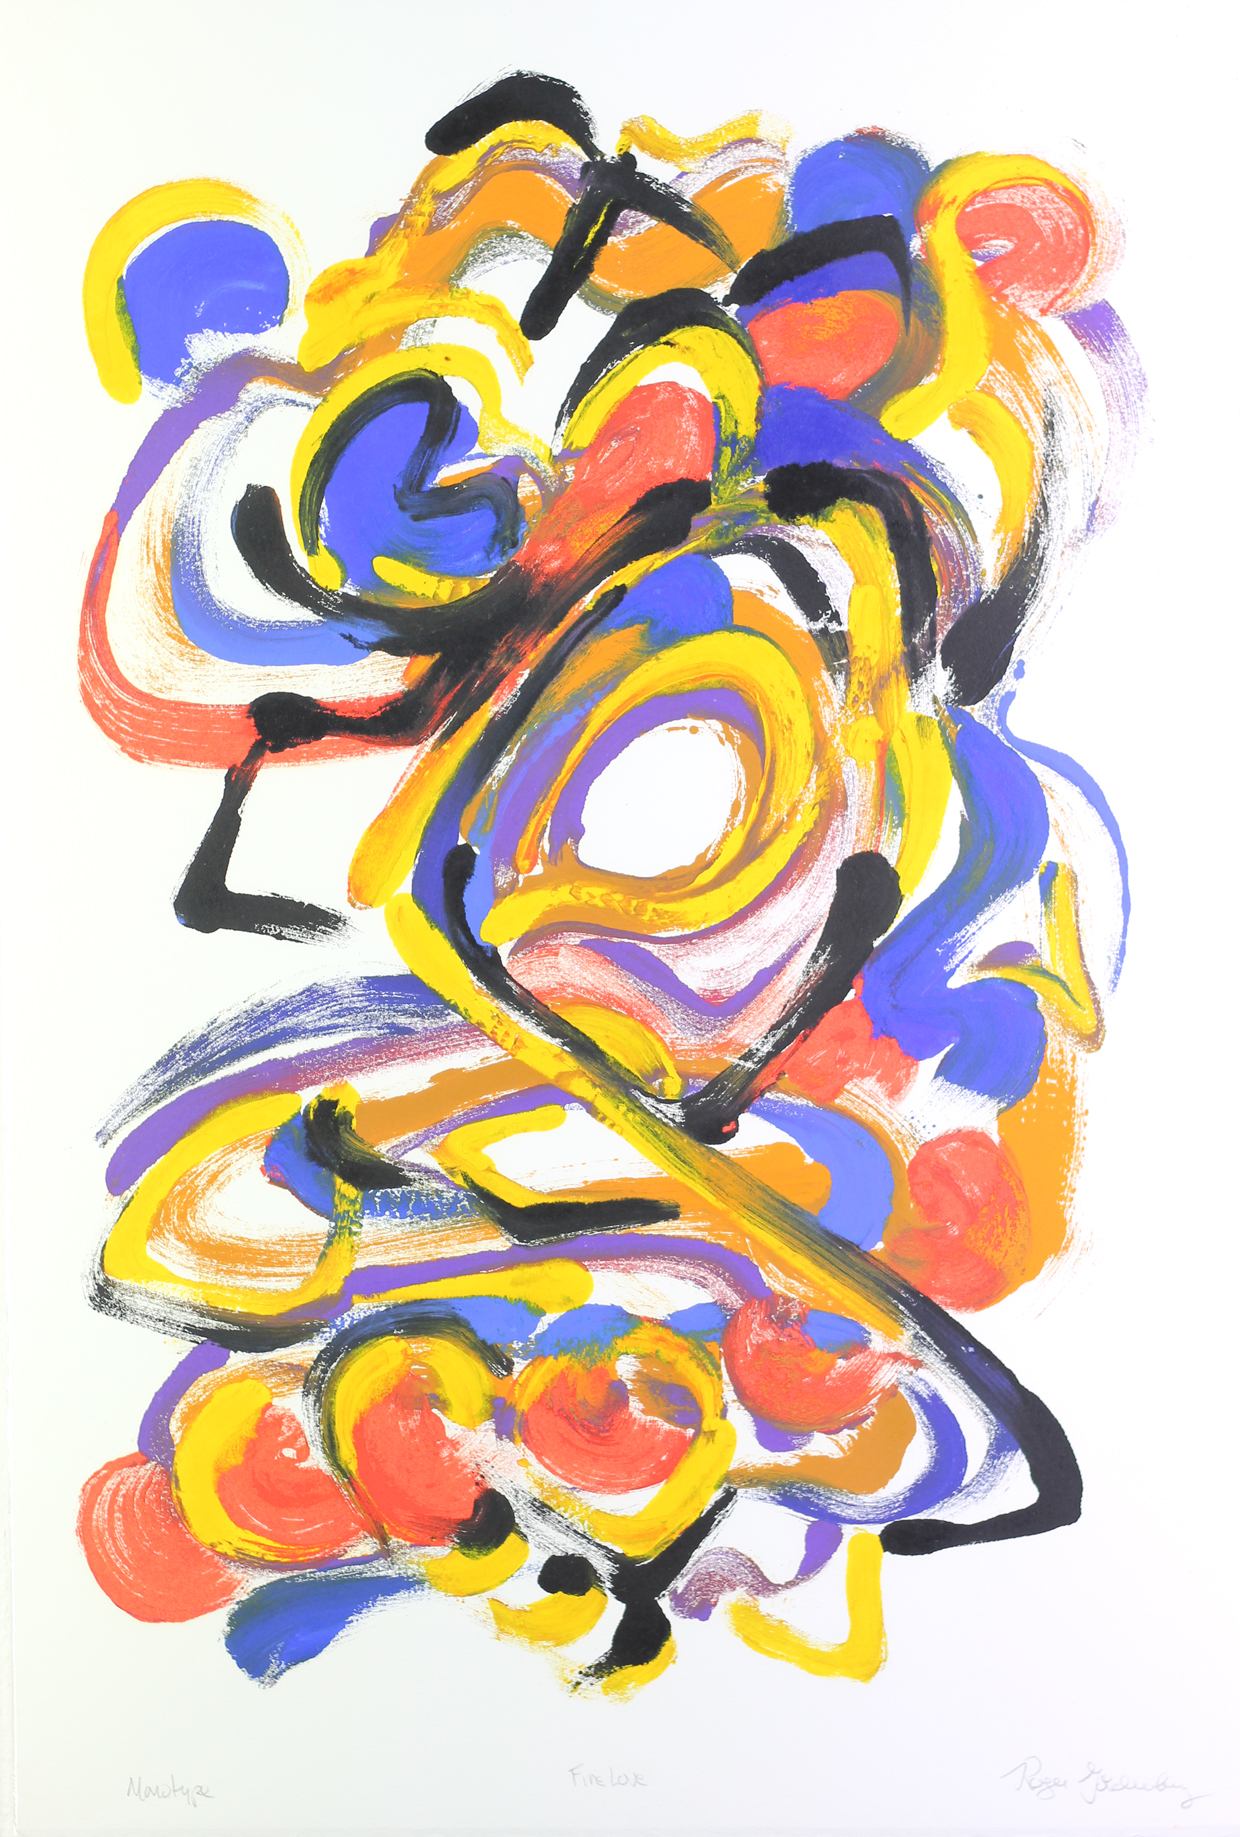 Roger Goldenberg's Visual Jazz Monotype Gallery D has prints pulled from shaped plates. Their style riffs on Goldenberg's shaped visual jazz paintings Fire Love